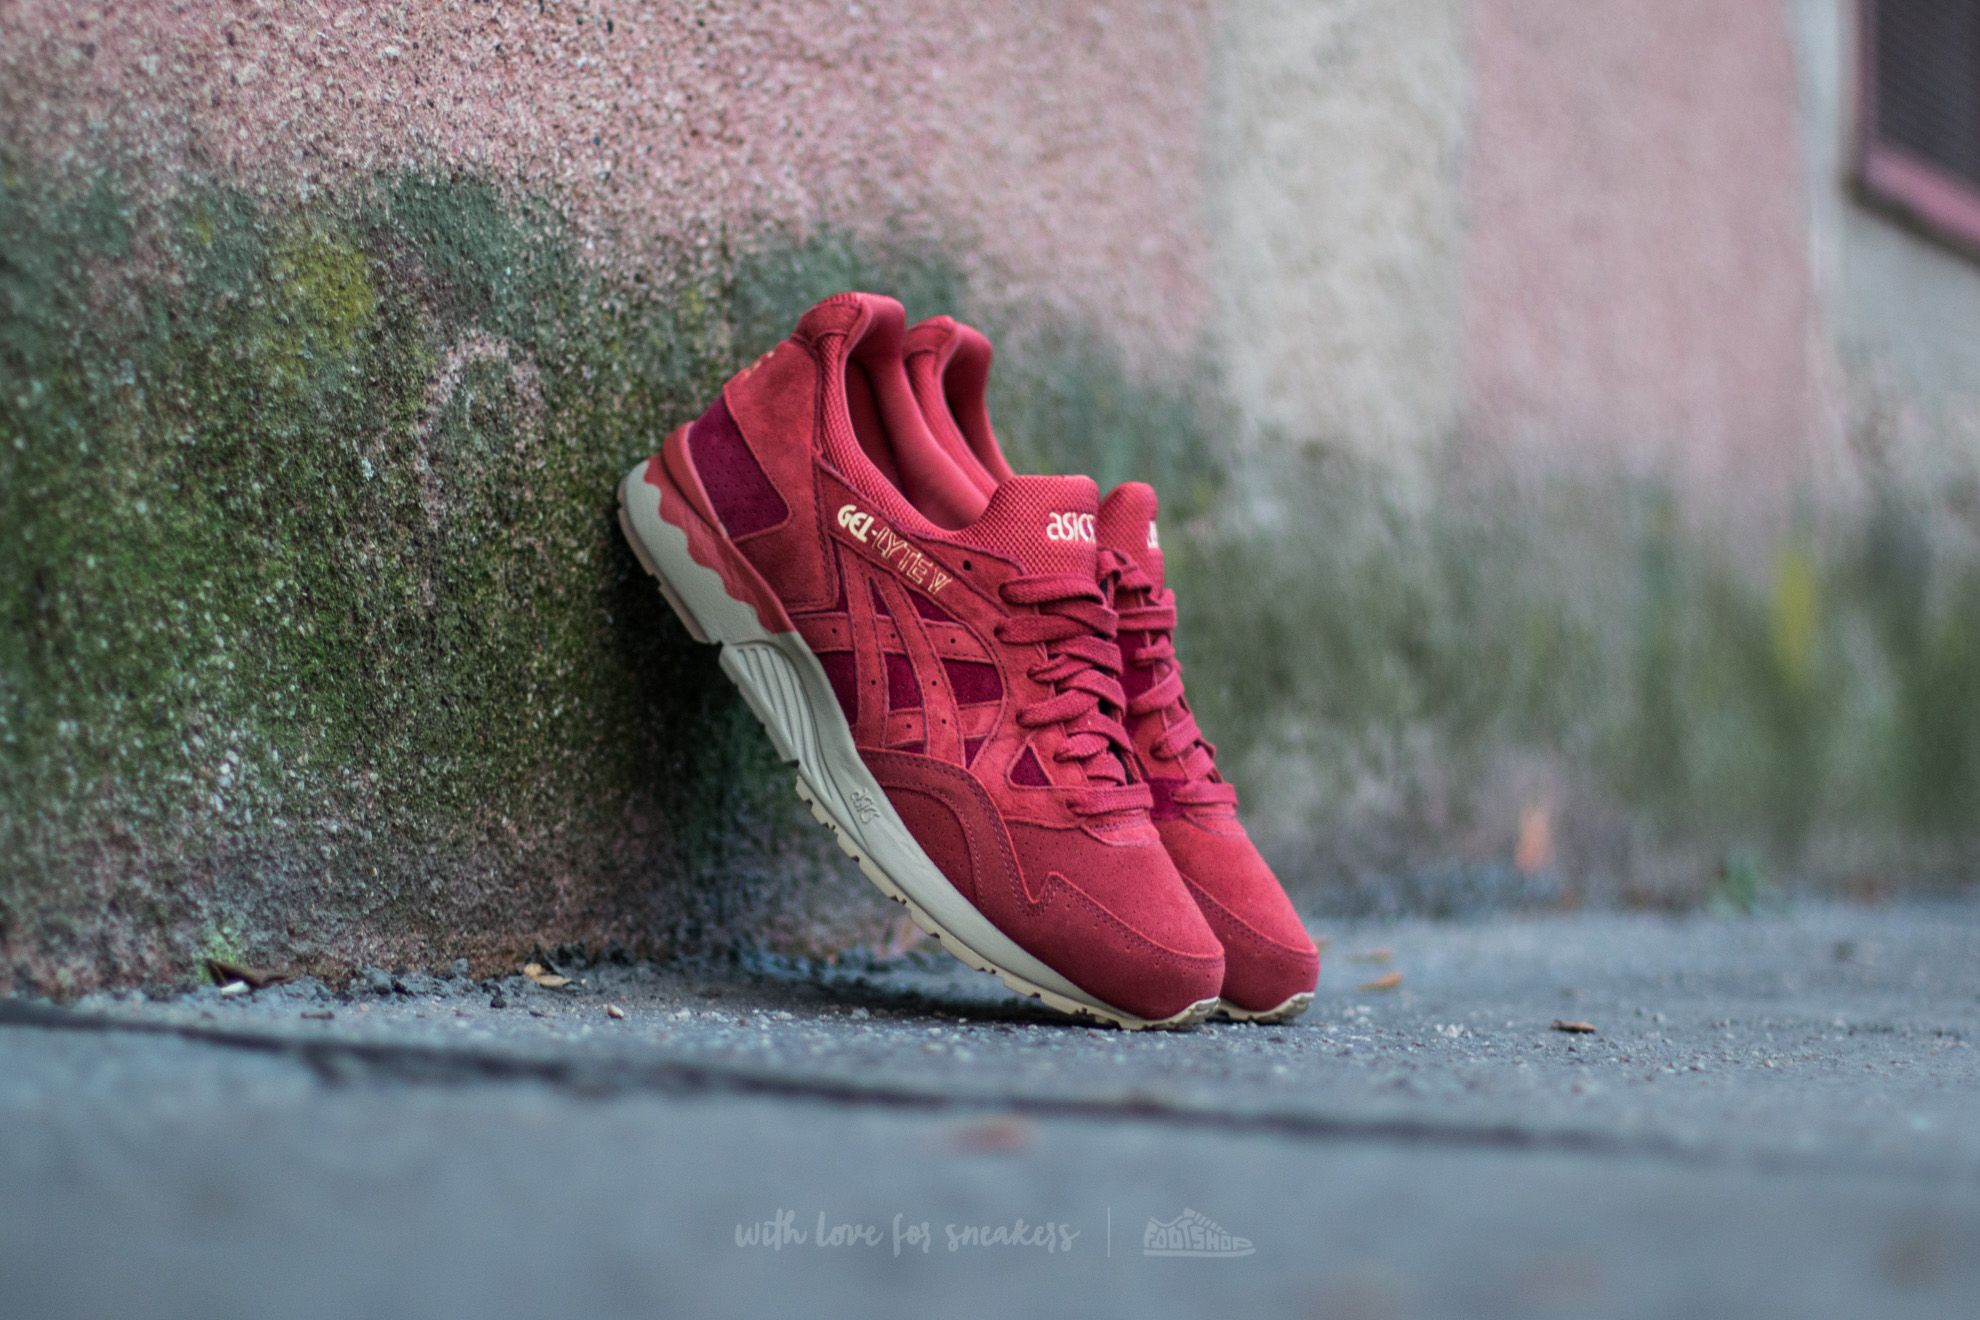 finest selection 5f59b 3404f Asics Gel-Lyte V Ot Red/Tandori Spice | Footshop